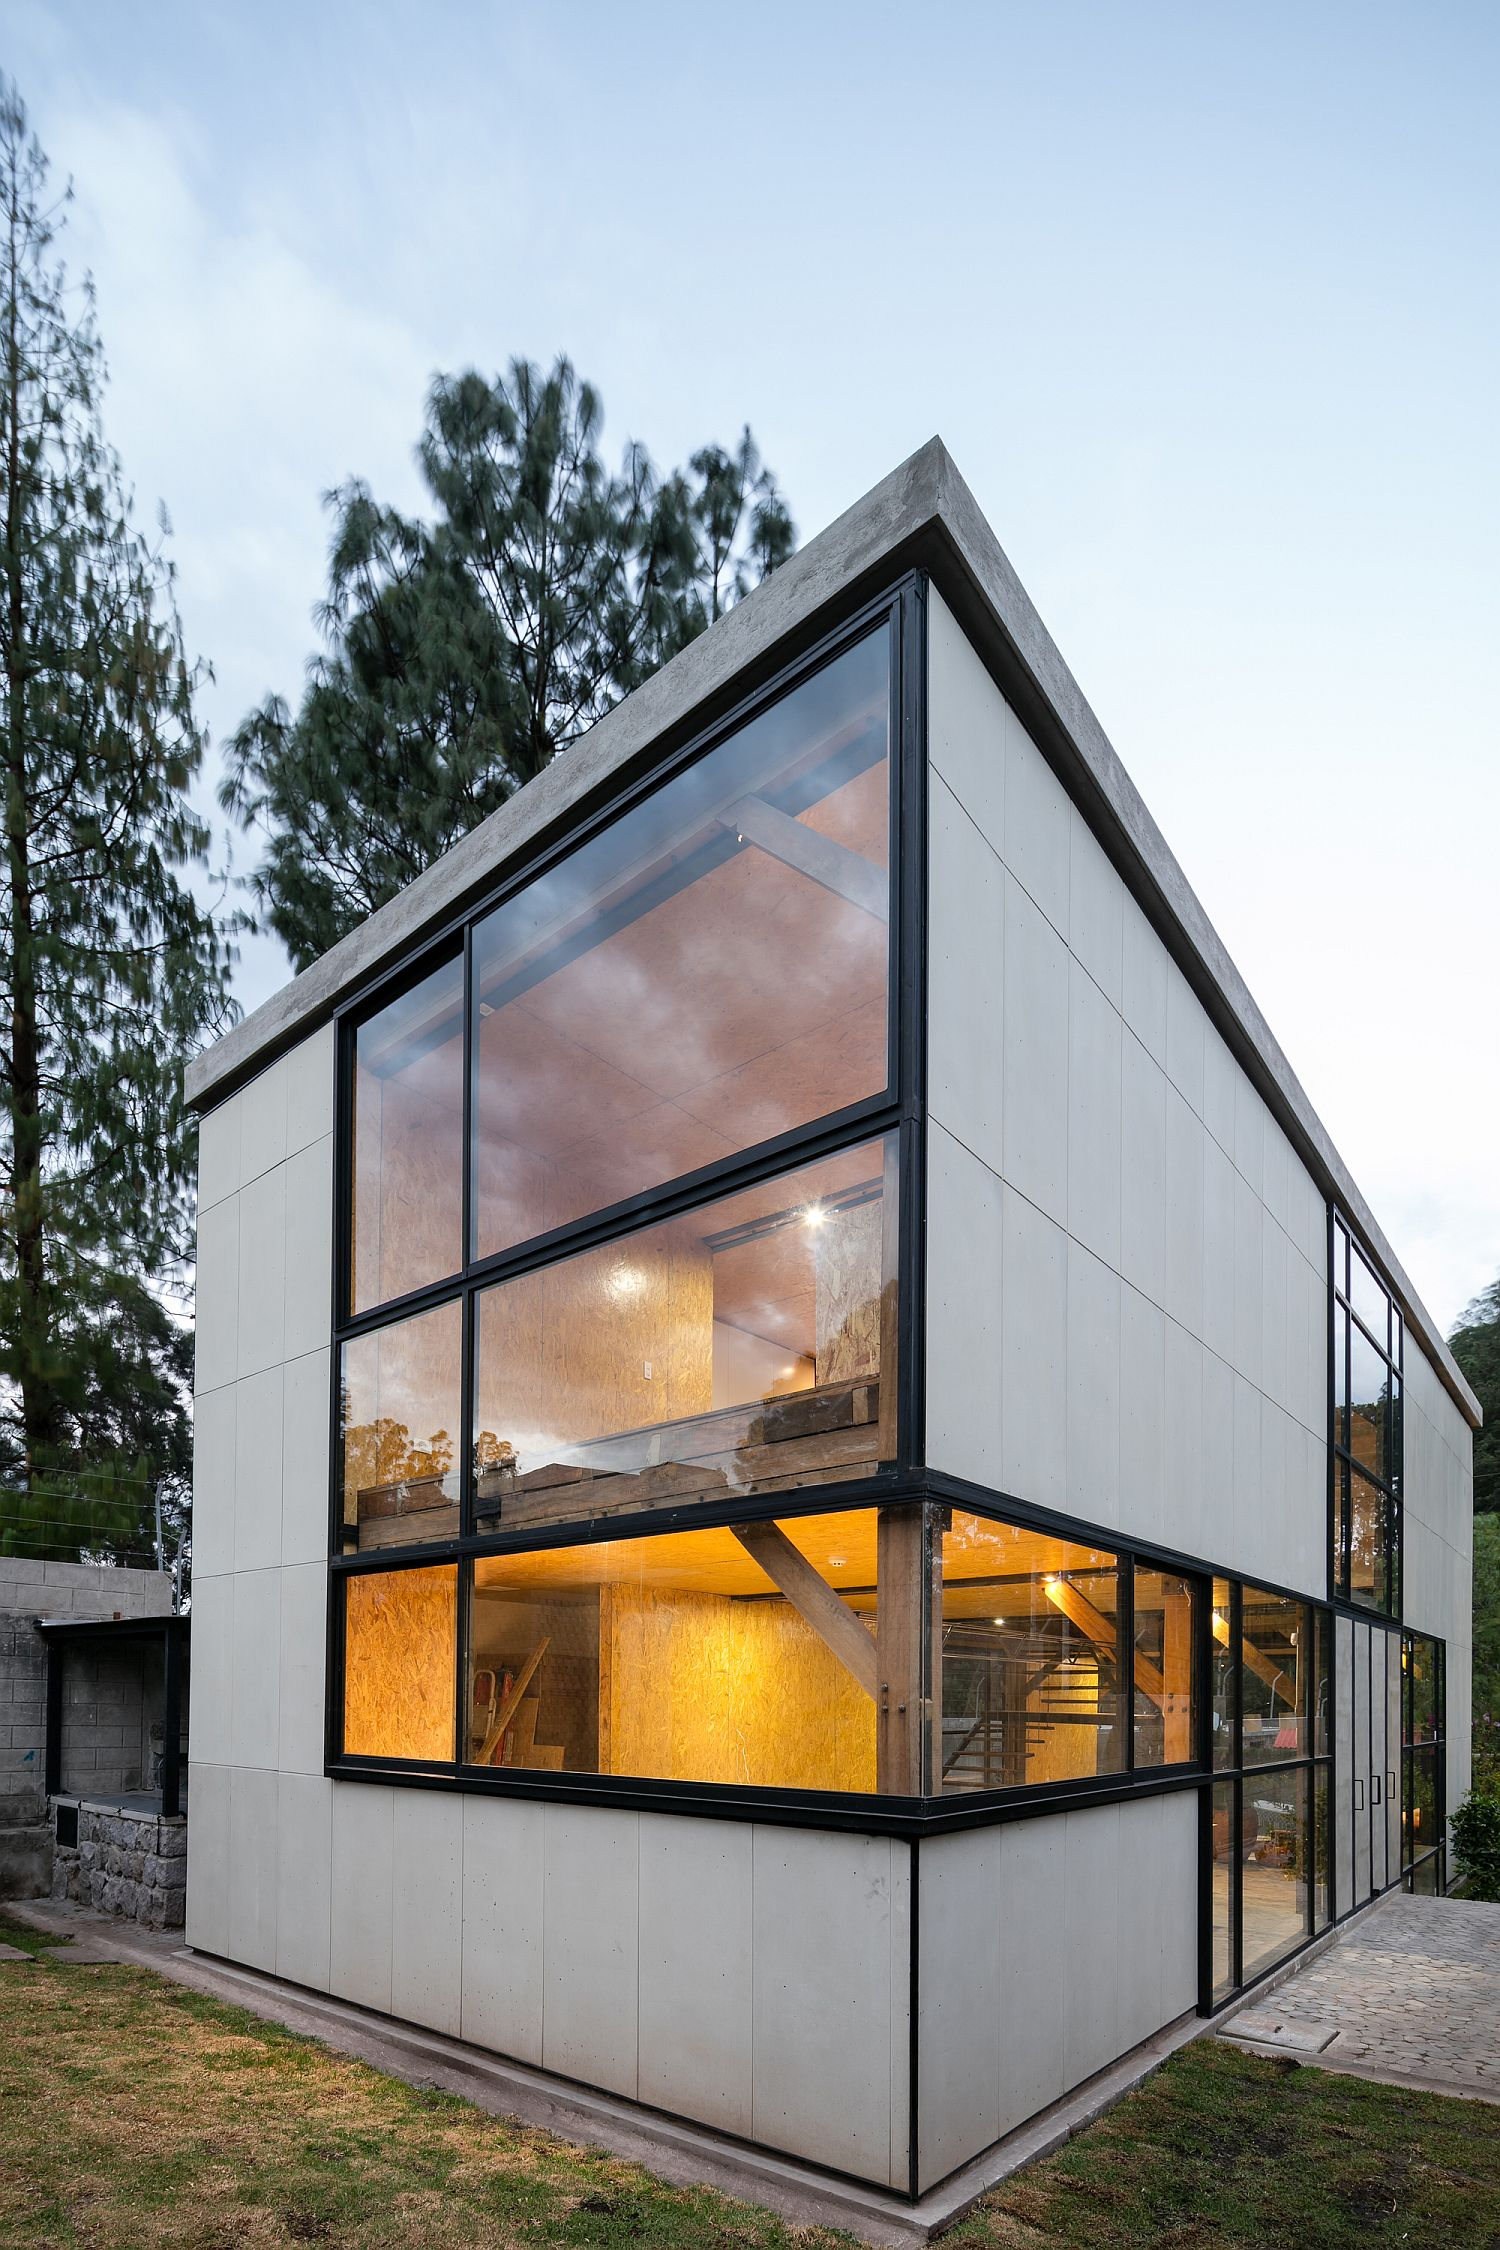 Multi-generational family home in Quito, Ecuador